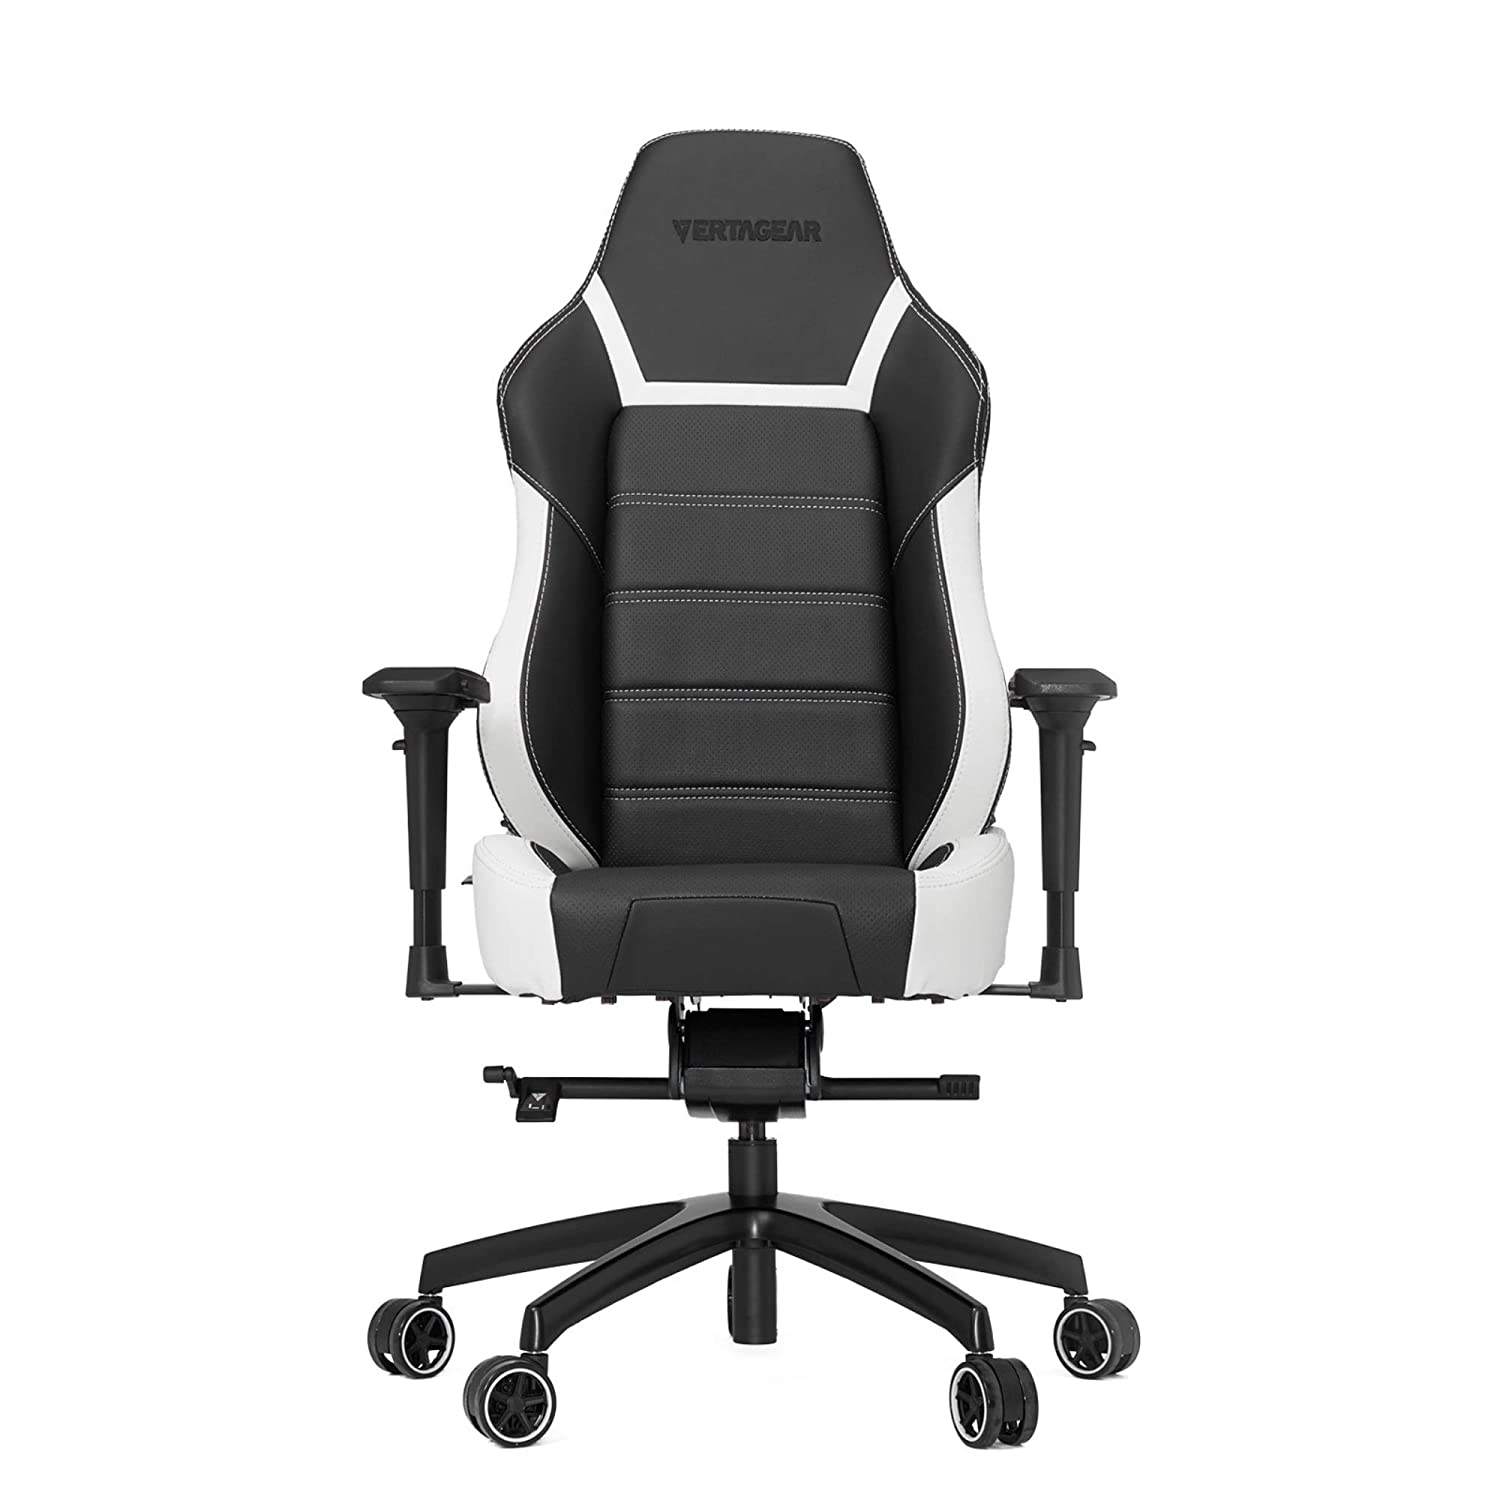 Vertagear Gaming SeriesPl6000 Schwarz Racing Chair xeWroCdB